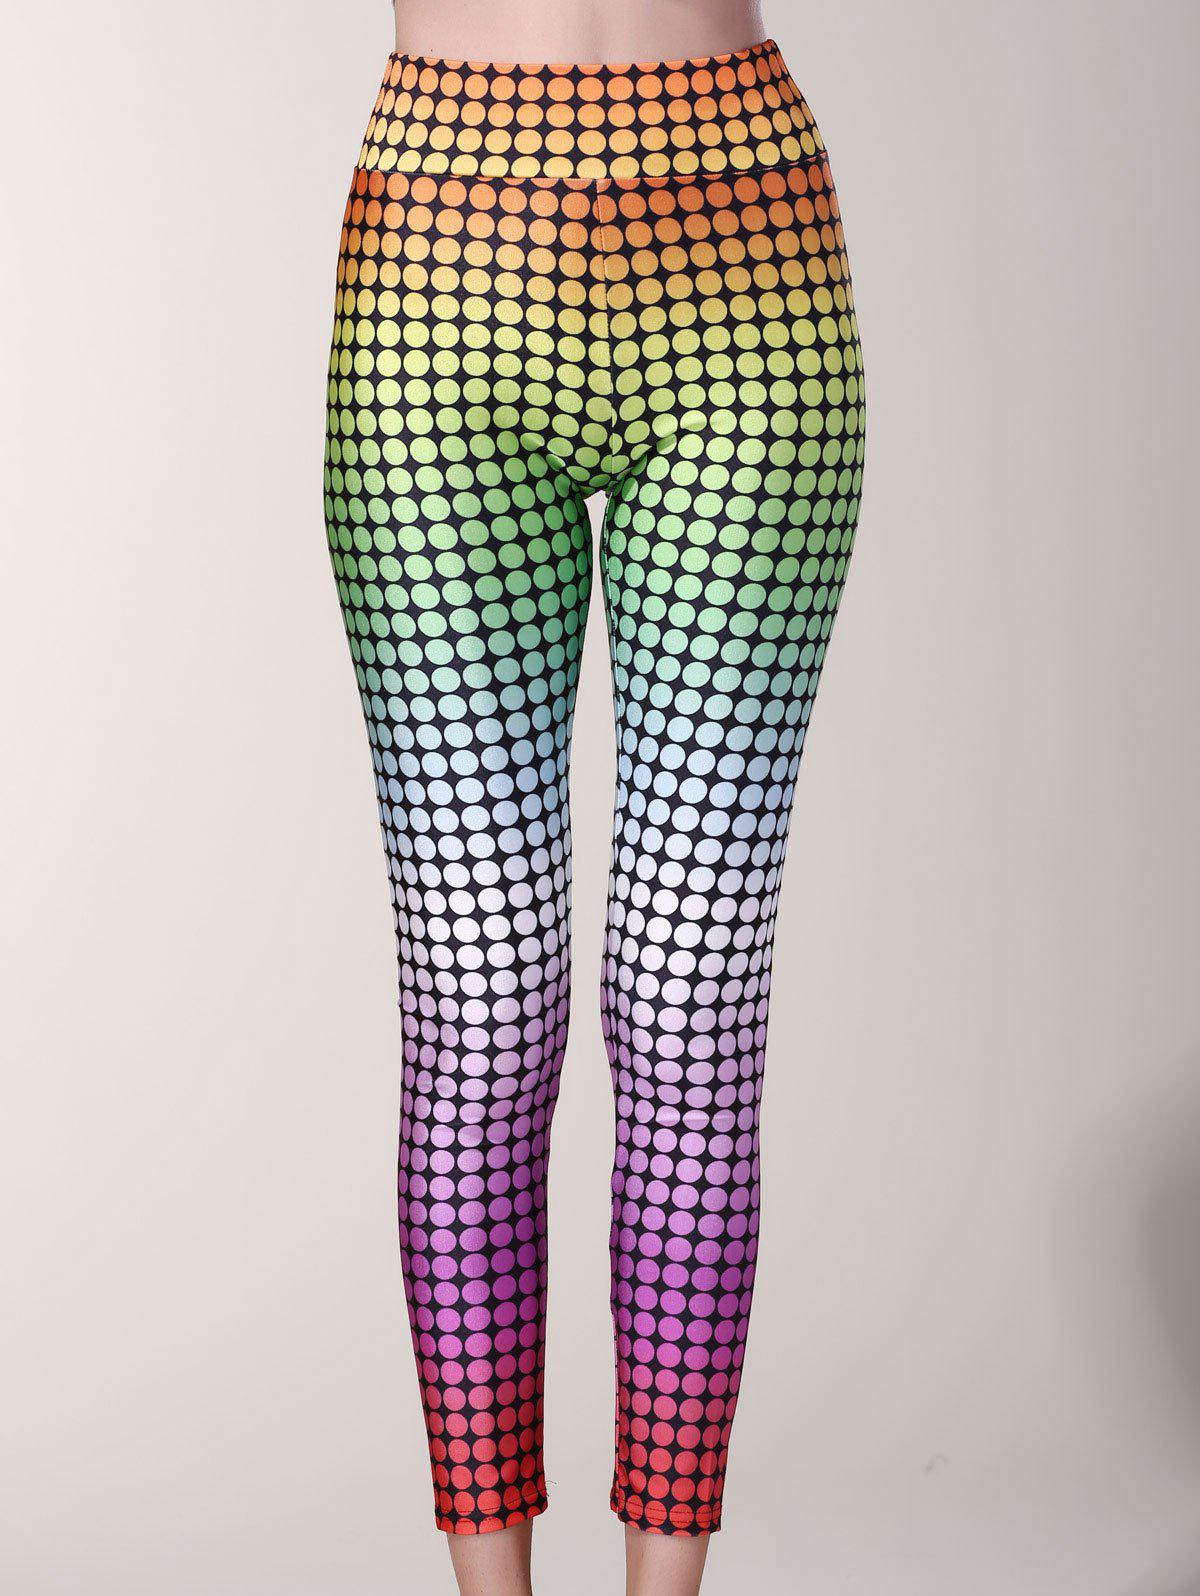 Charming Colorful Polka Dot Print Ankle Sport Pants For Women - COLORMIX M